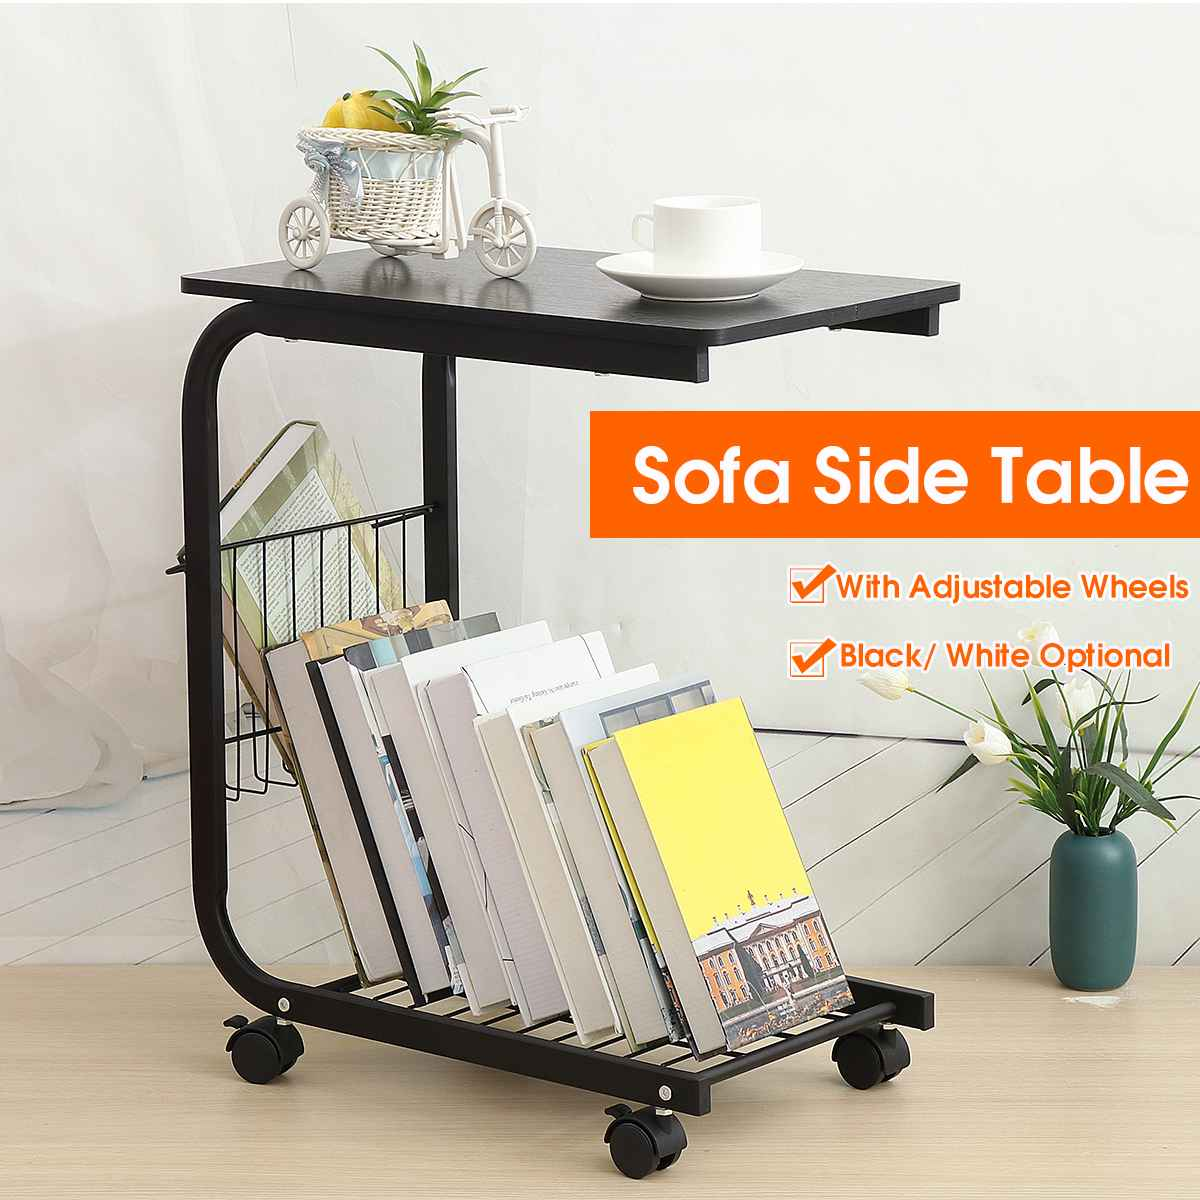 Black/White Adjustable Desk With Detachable Wheels Sofa Side Coffee Table Mobile Side Black Willow Tables Wholesale